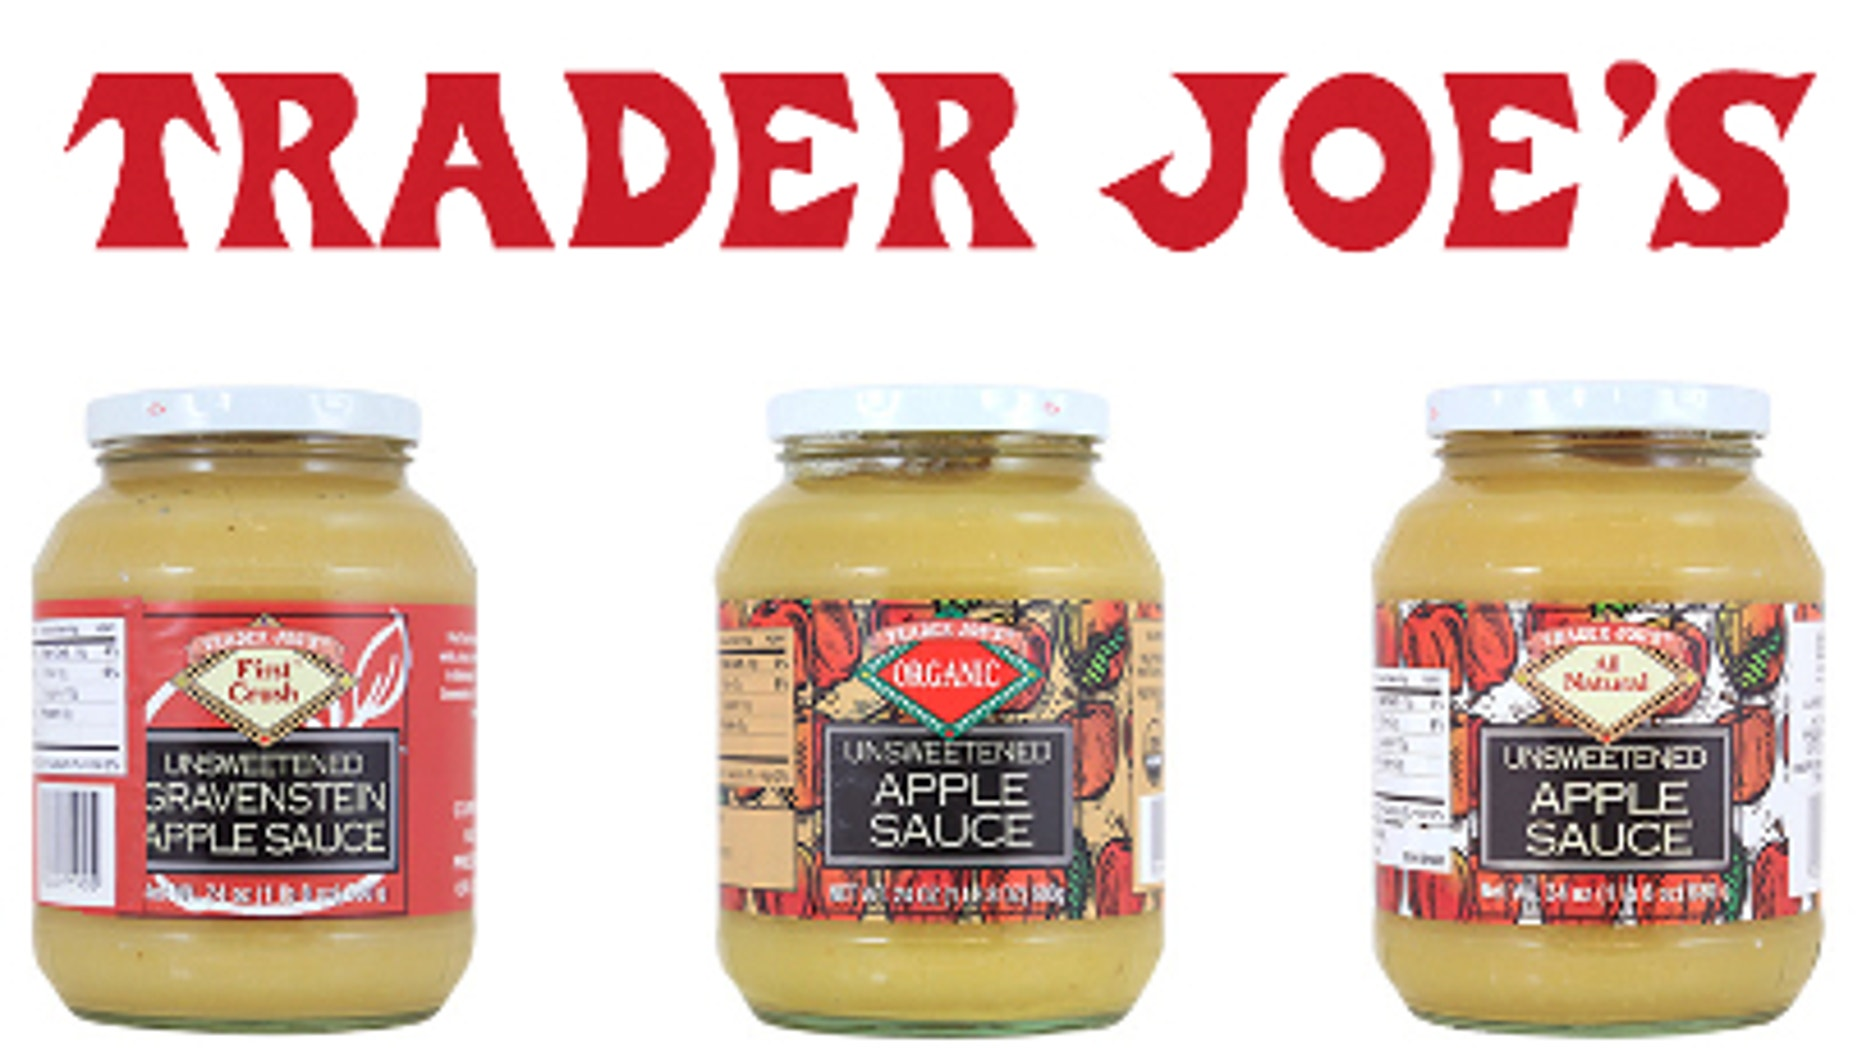 Trader Joe's issued the recall over concerns about potential pieces of glass in jars.